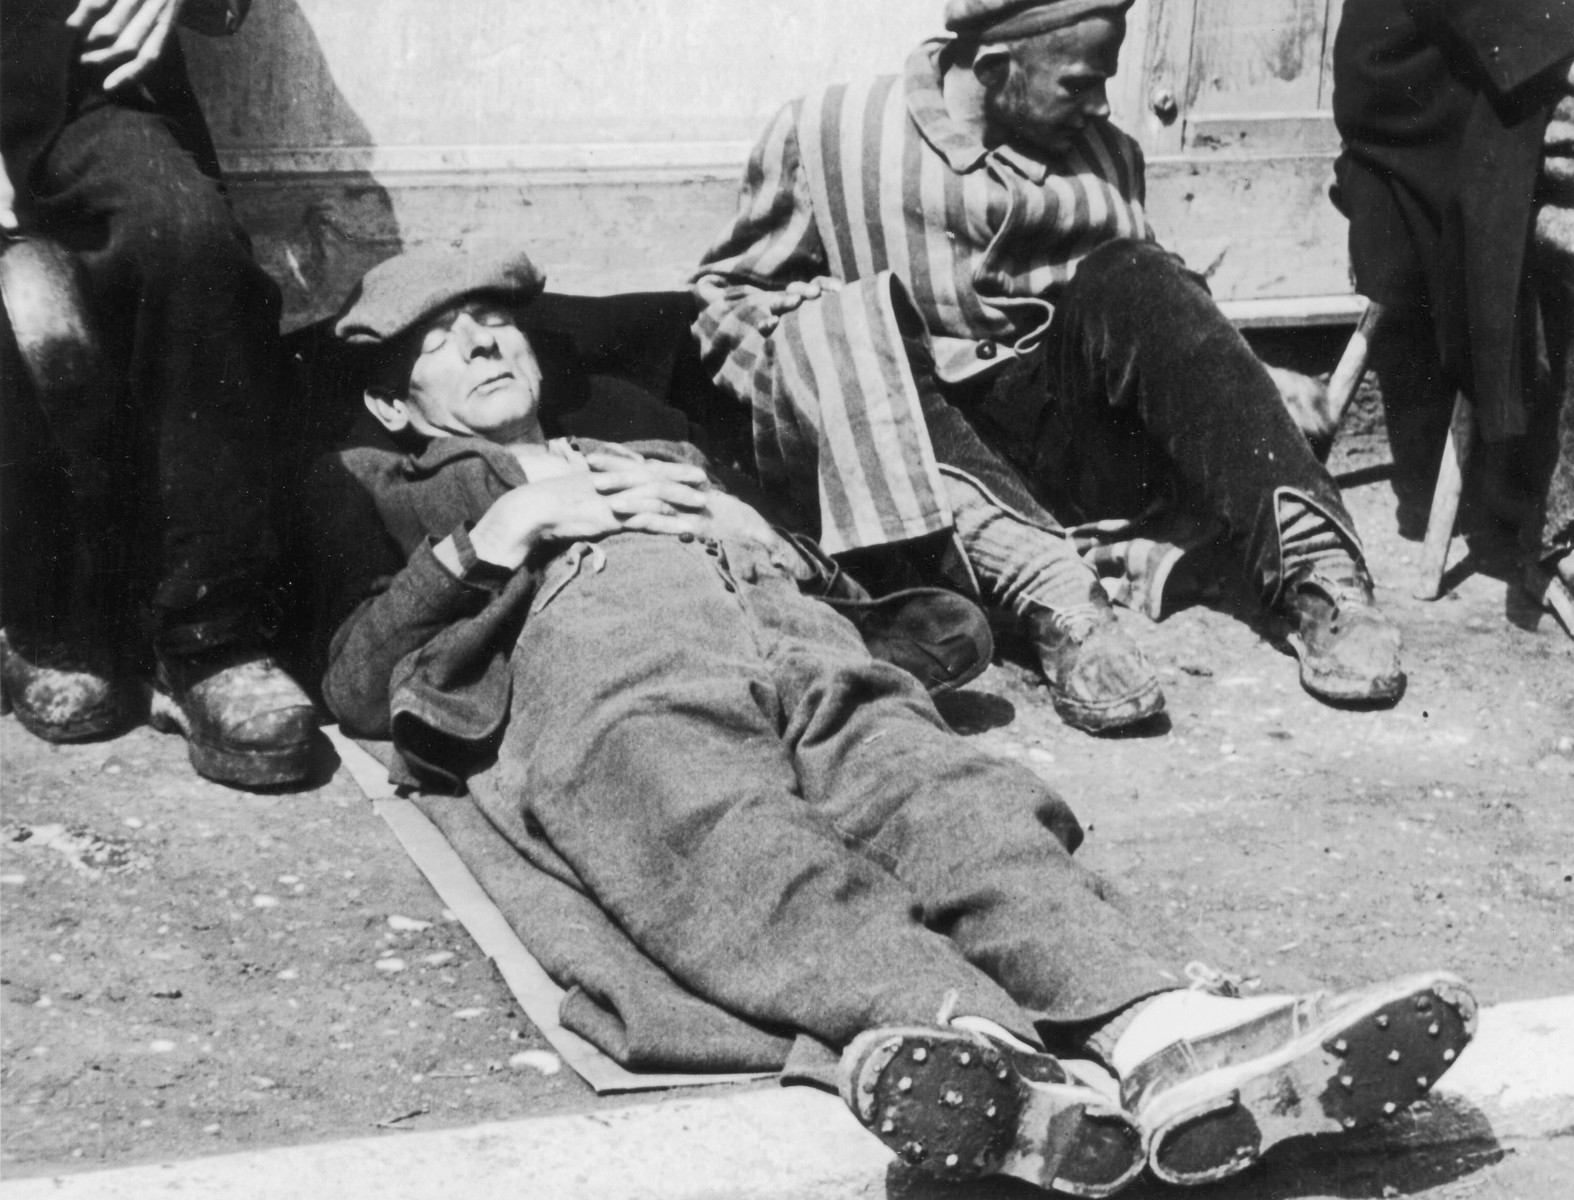 Close-up portrait of a survivor taking a nap in the Dachau concentration camp.